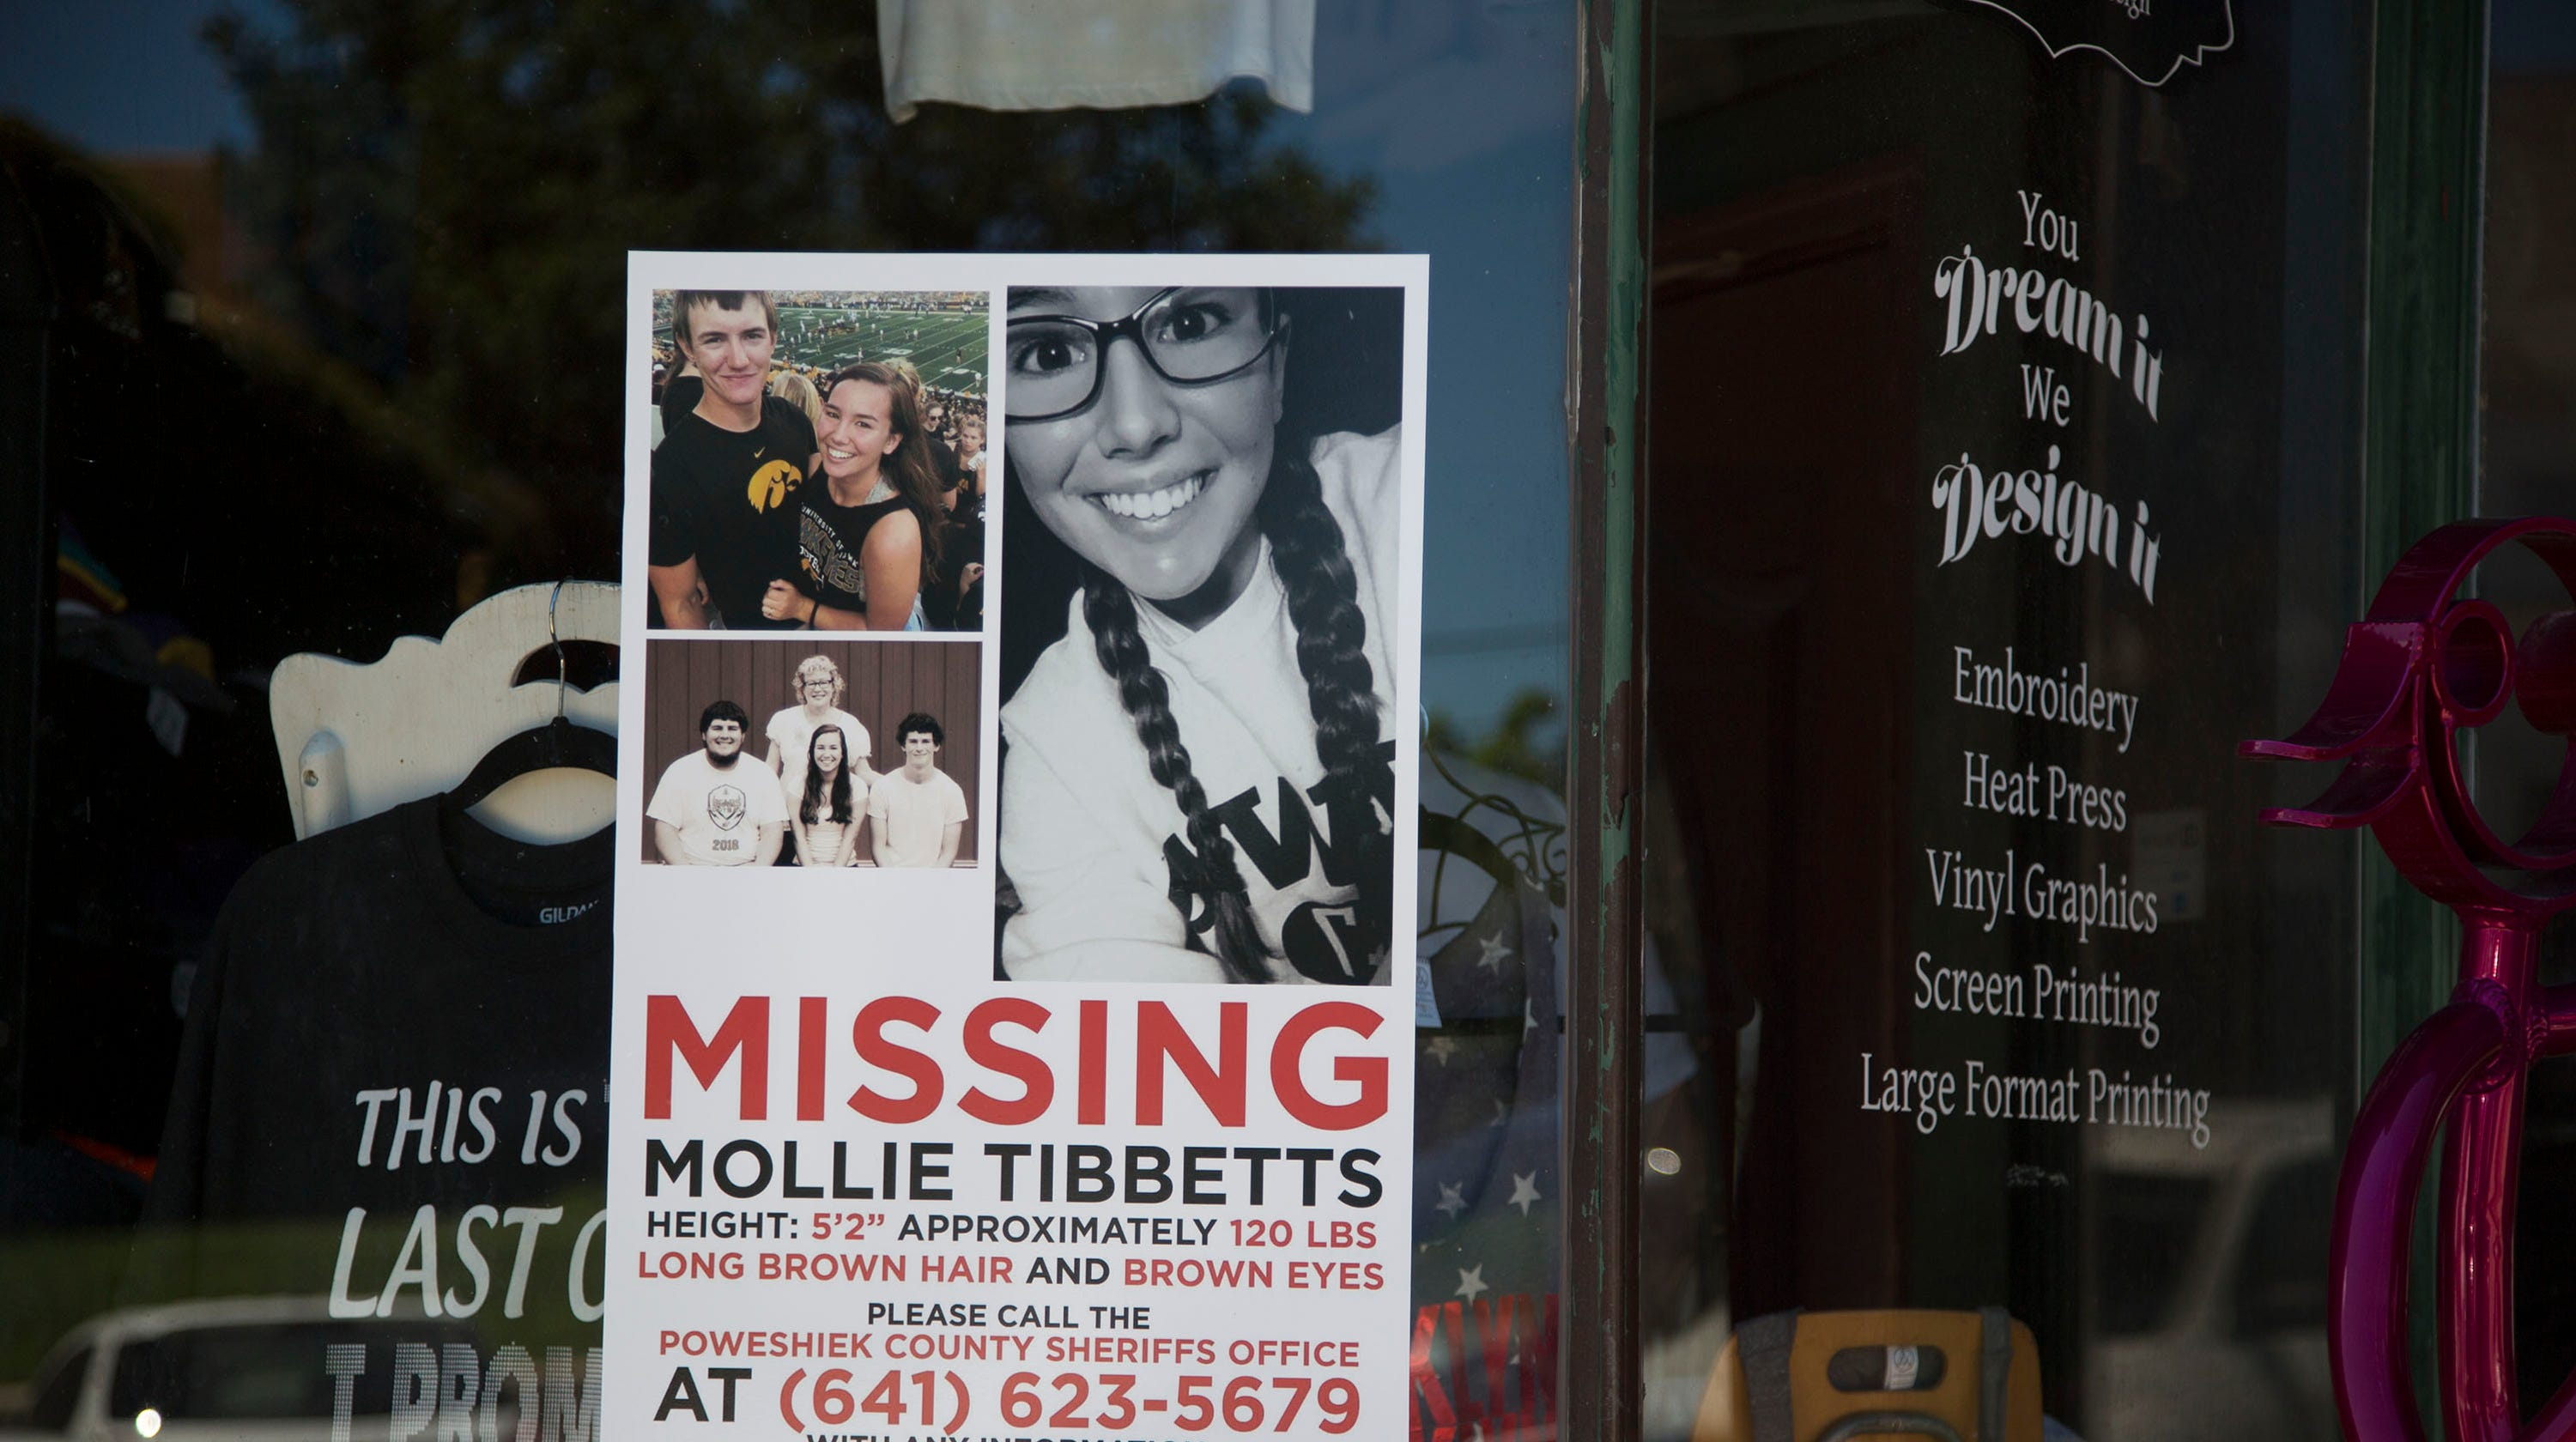 mollie tibbetts reward fund tops 300k student missing since july 28